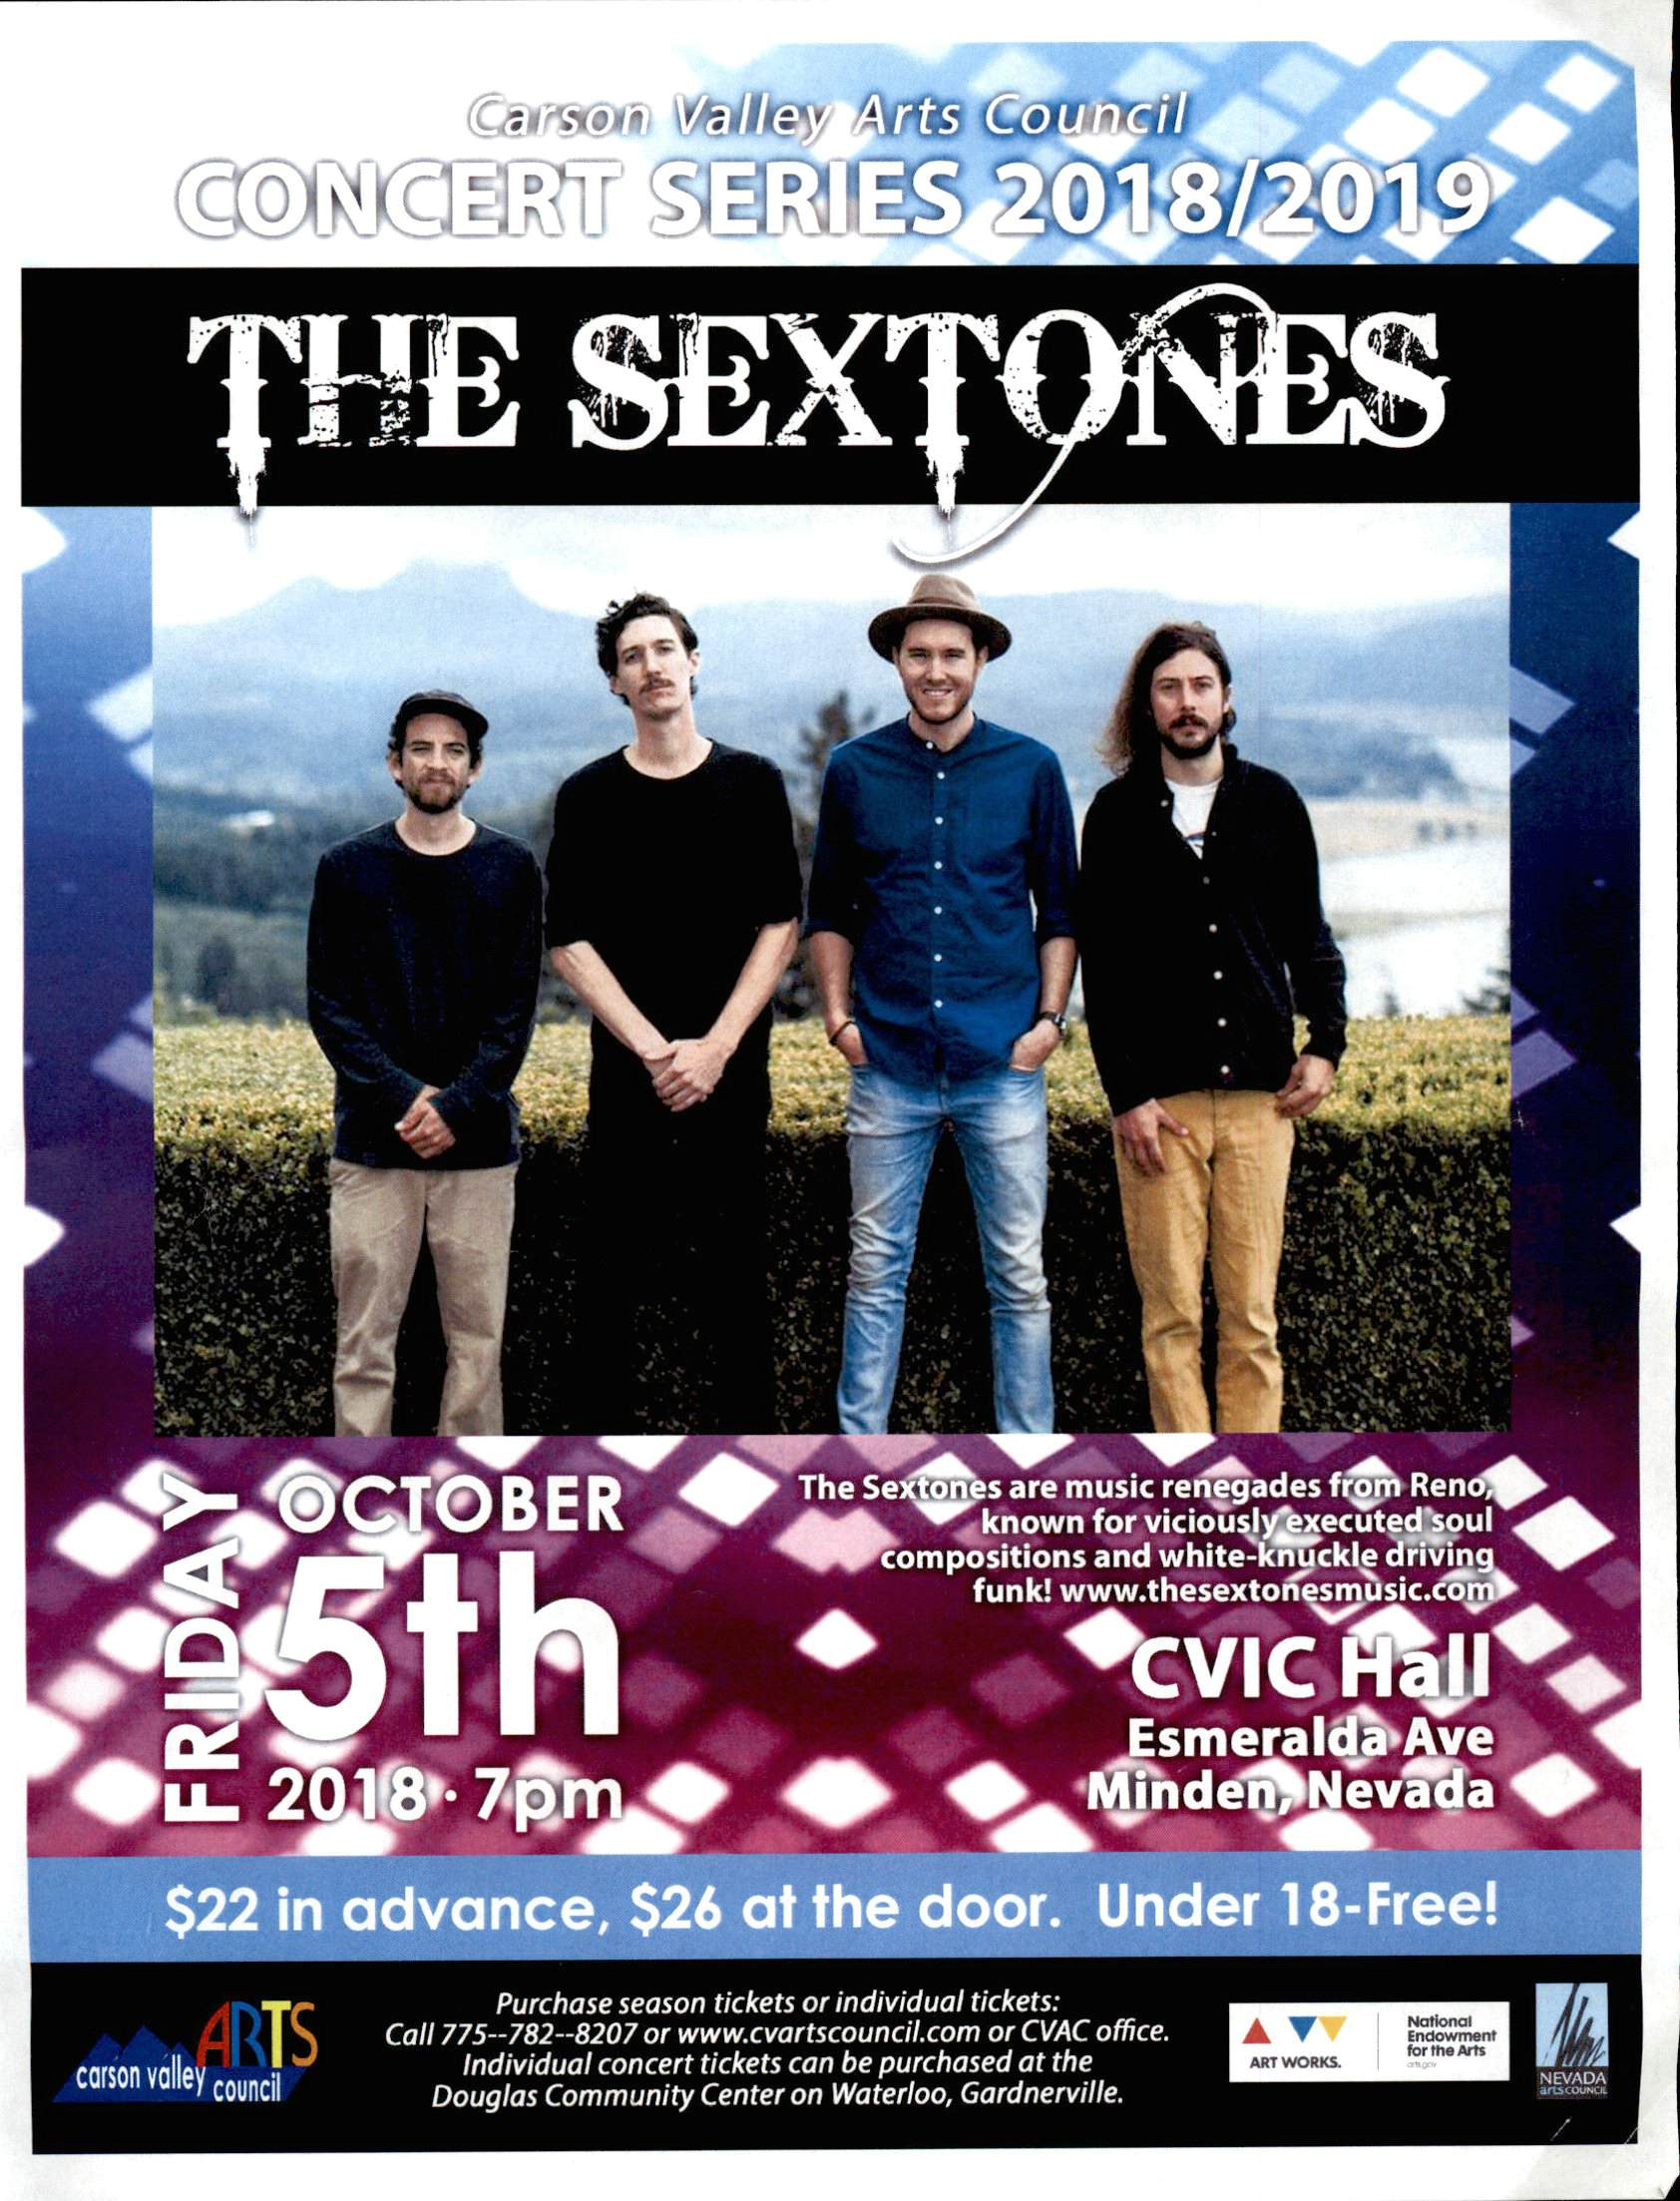 The Sextones Oct. 5th